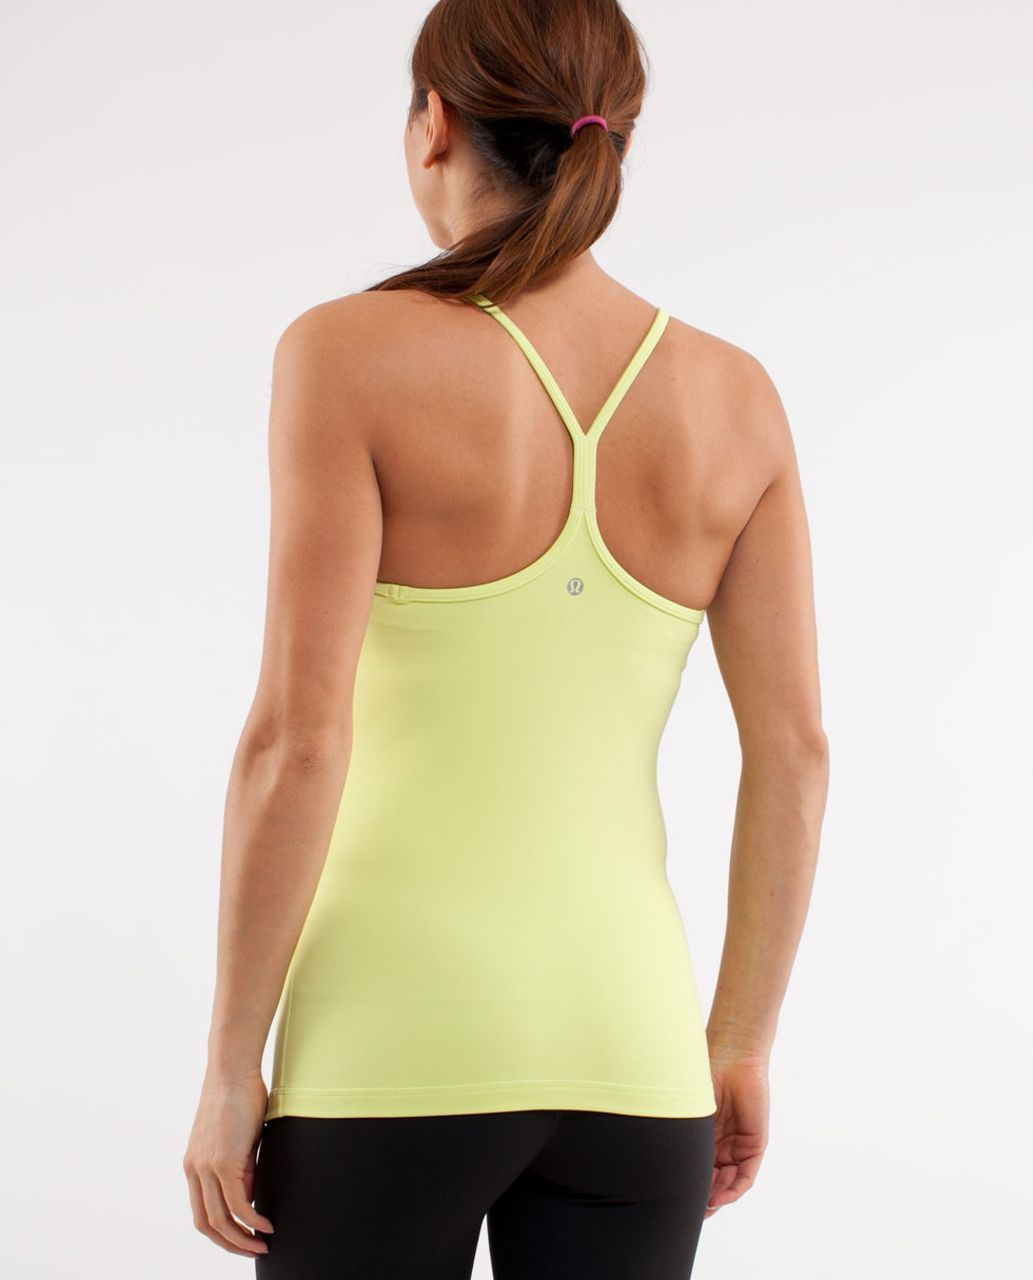 Lululemon Power Y Tank - Wild Lime